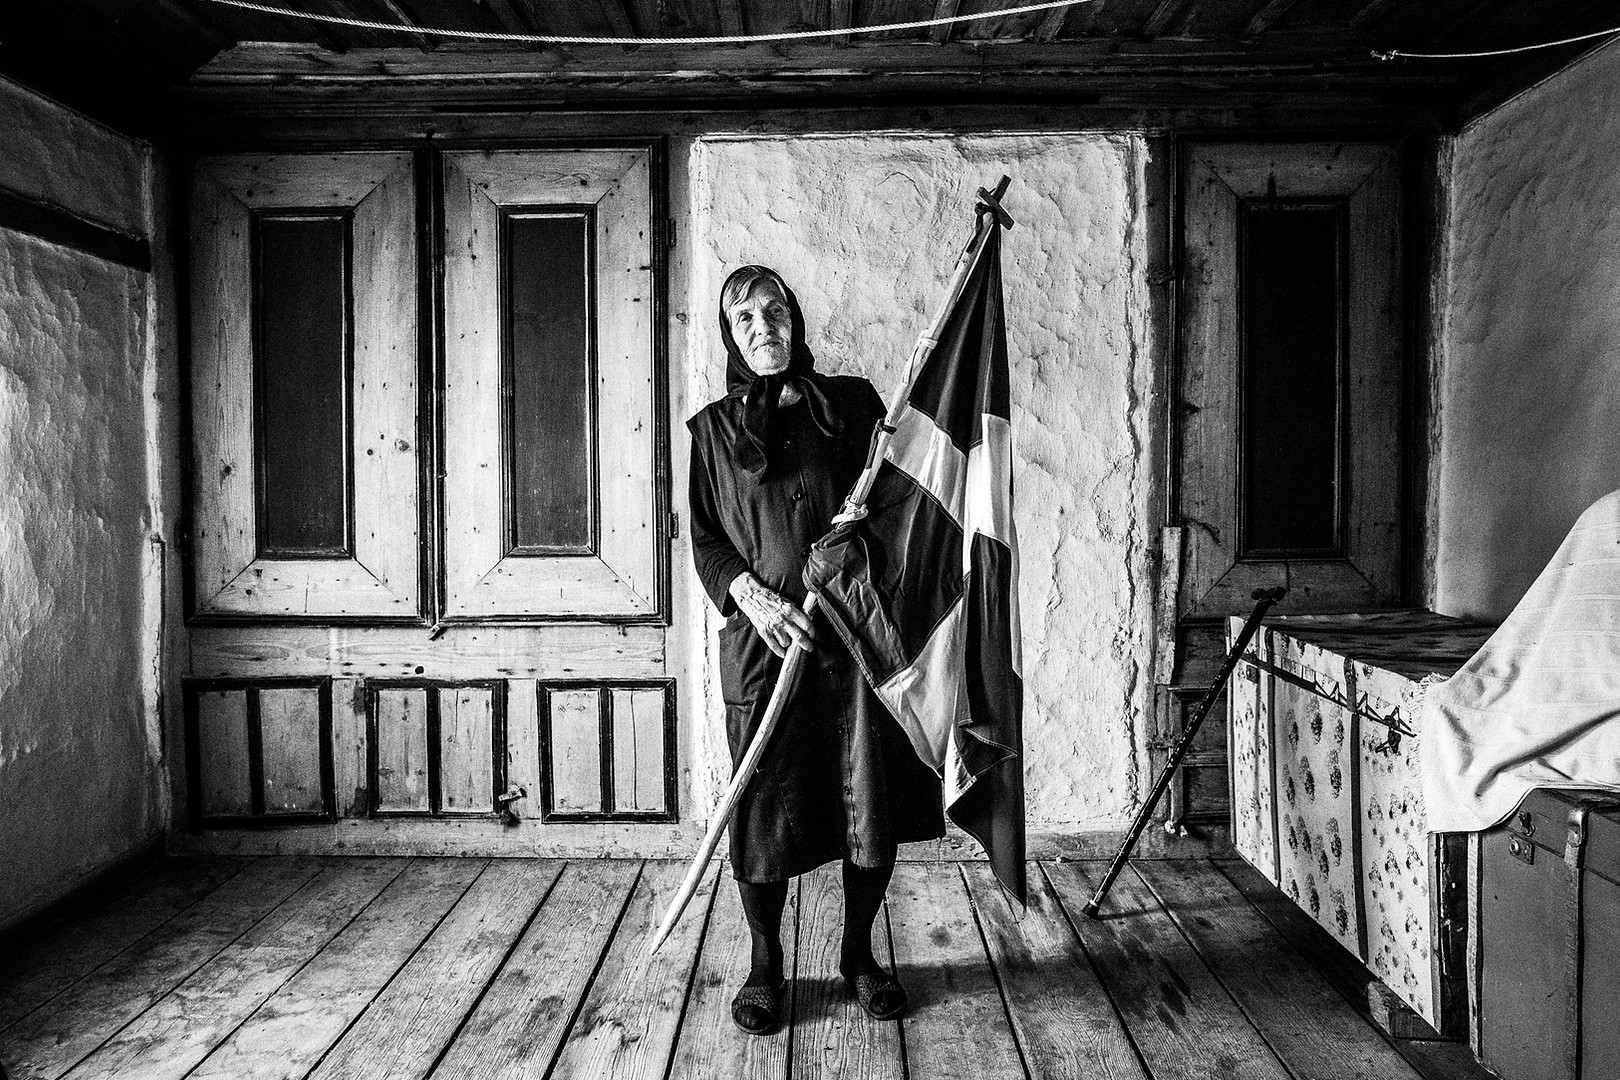 Lady with flag, Metaxades, Thrace, Greece